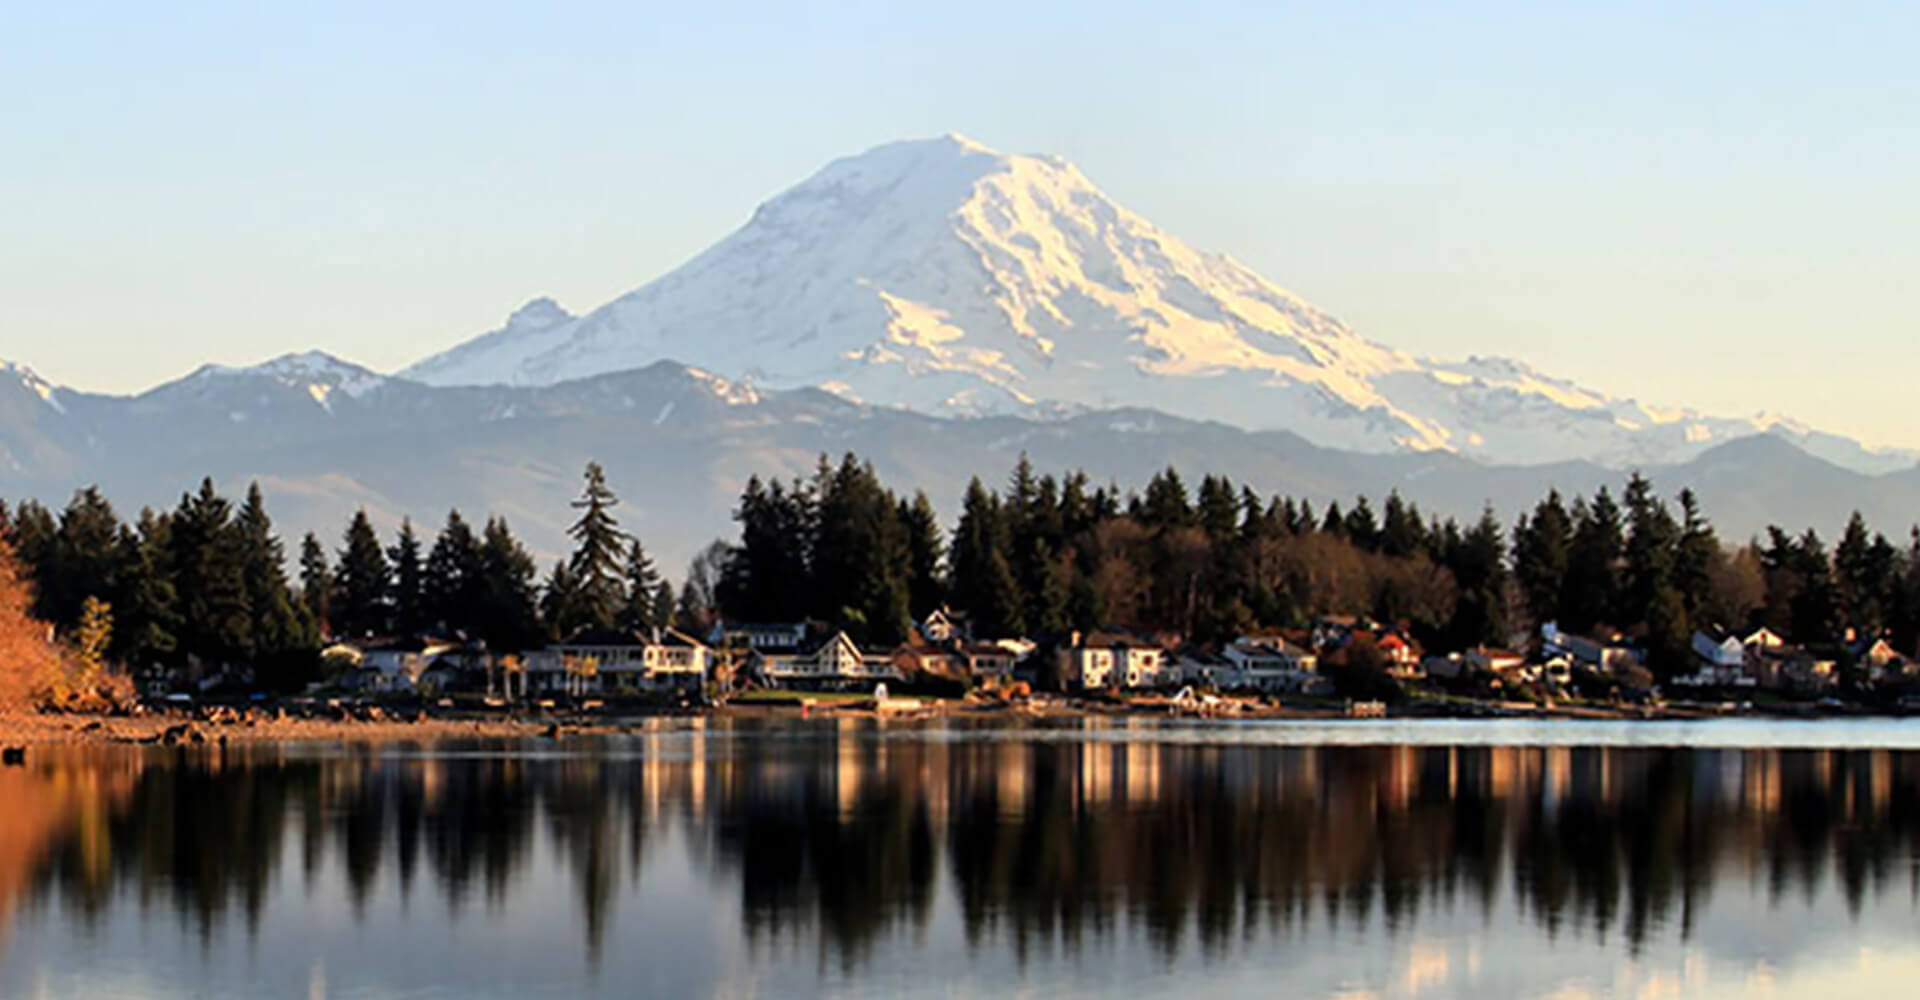 Bonney Lake with Mt. Rainier in the background